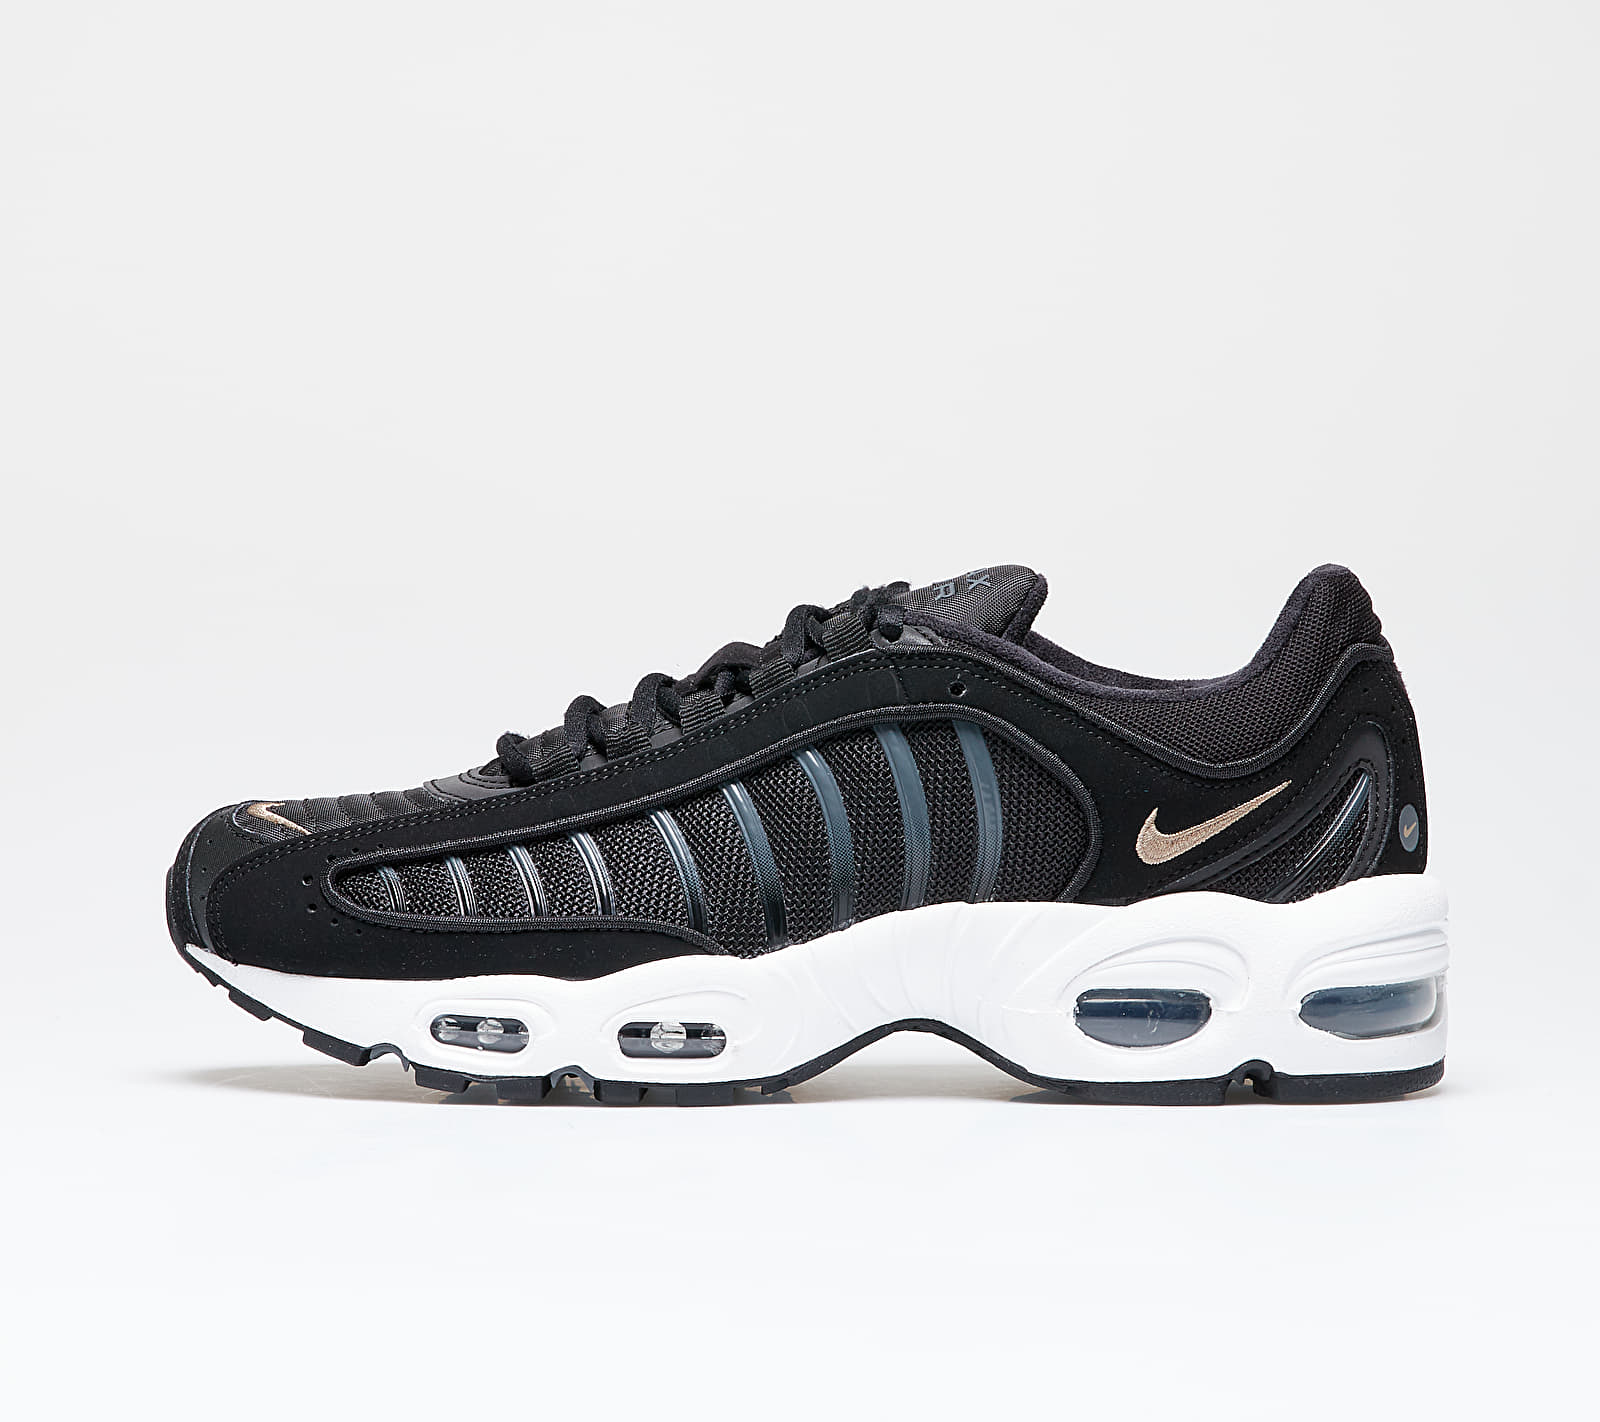 Nike Air Max Tailwind IV Black/ Khaki-Iron Grey-White EUR 41